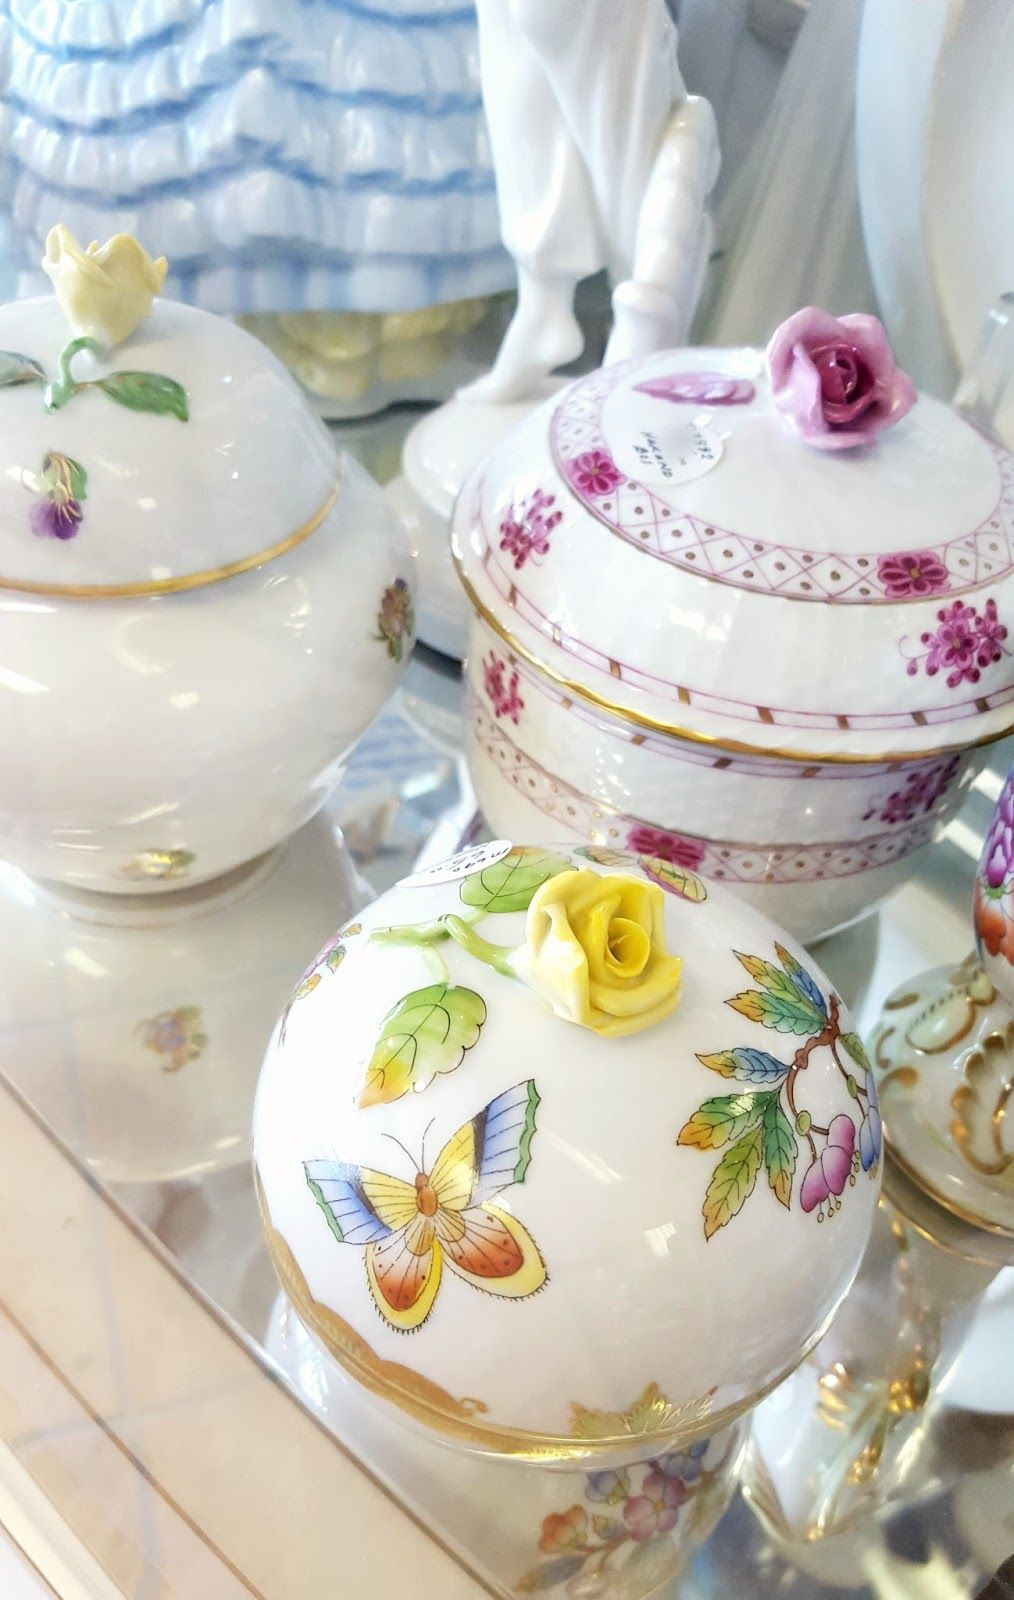 Jennelise: A Day with Heirlooms